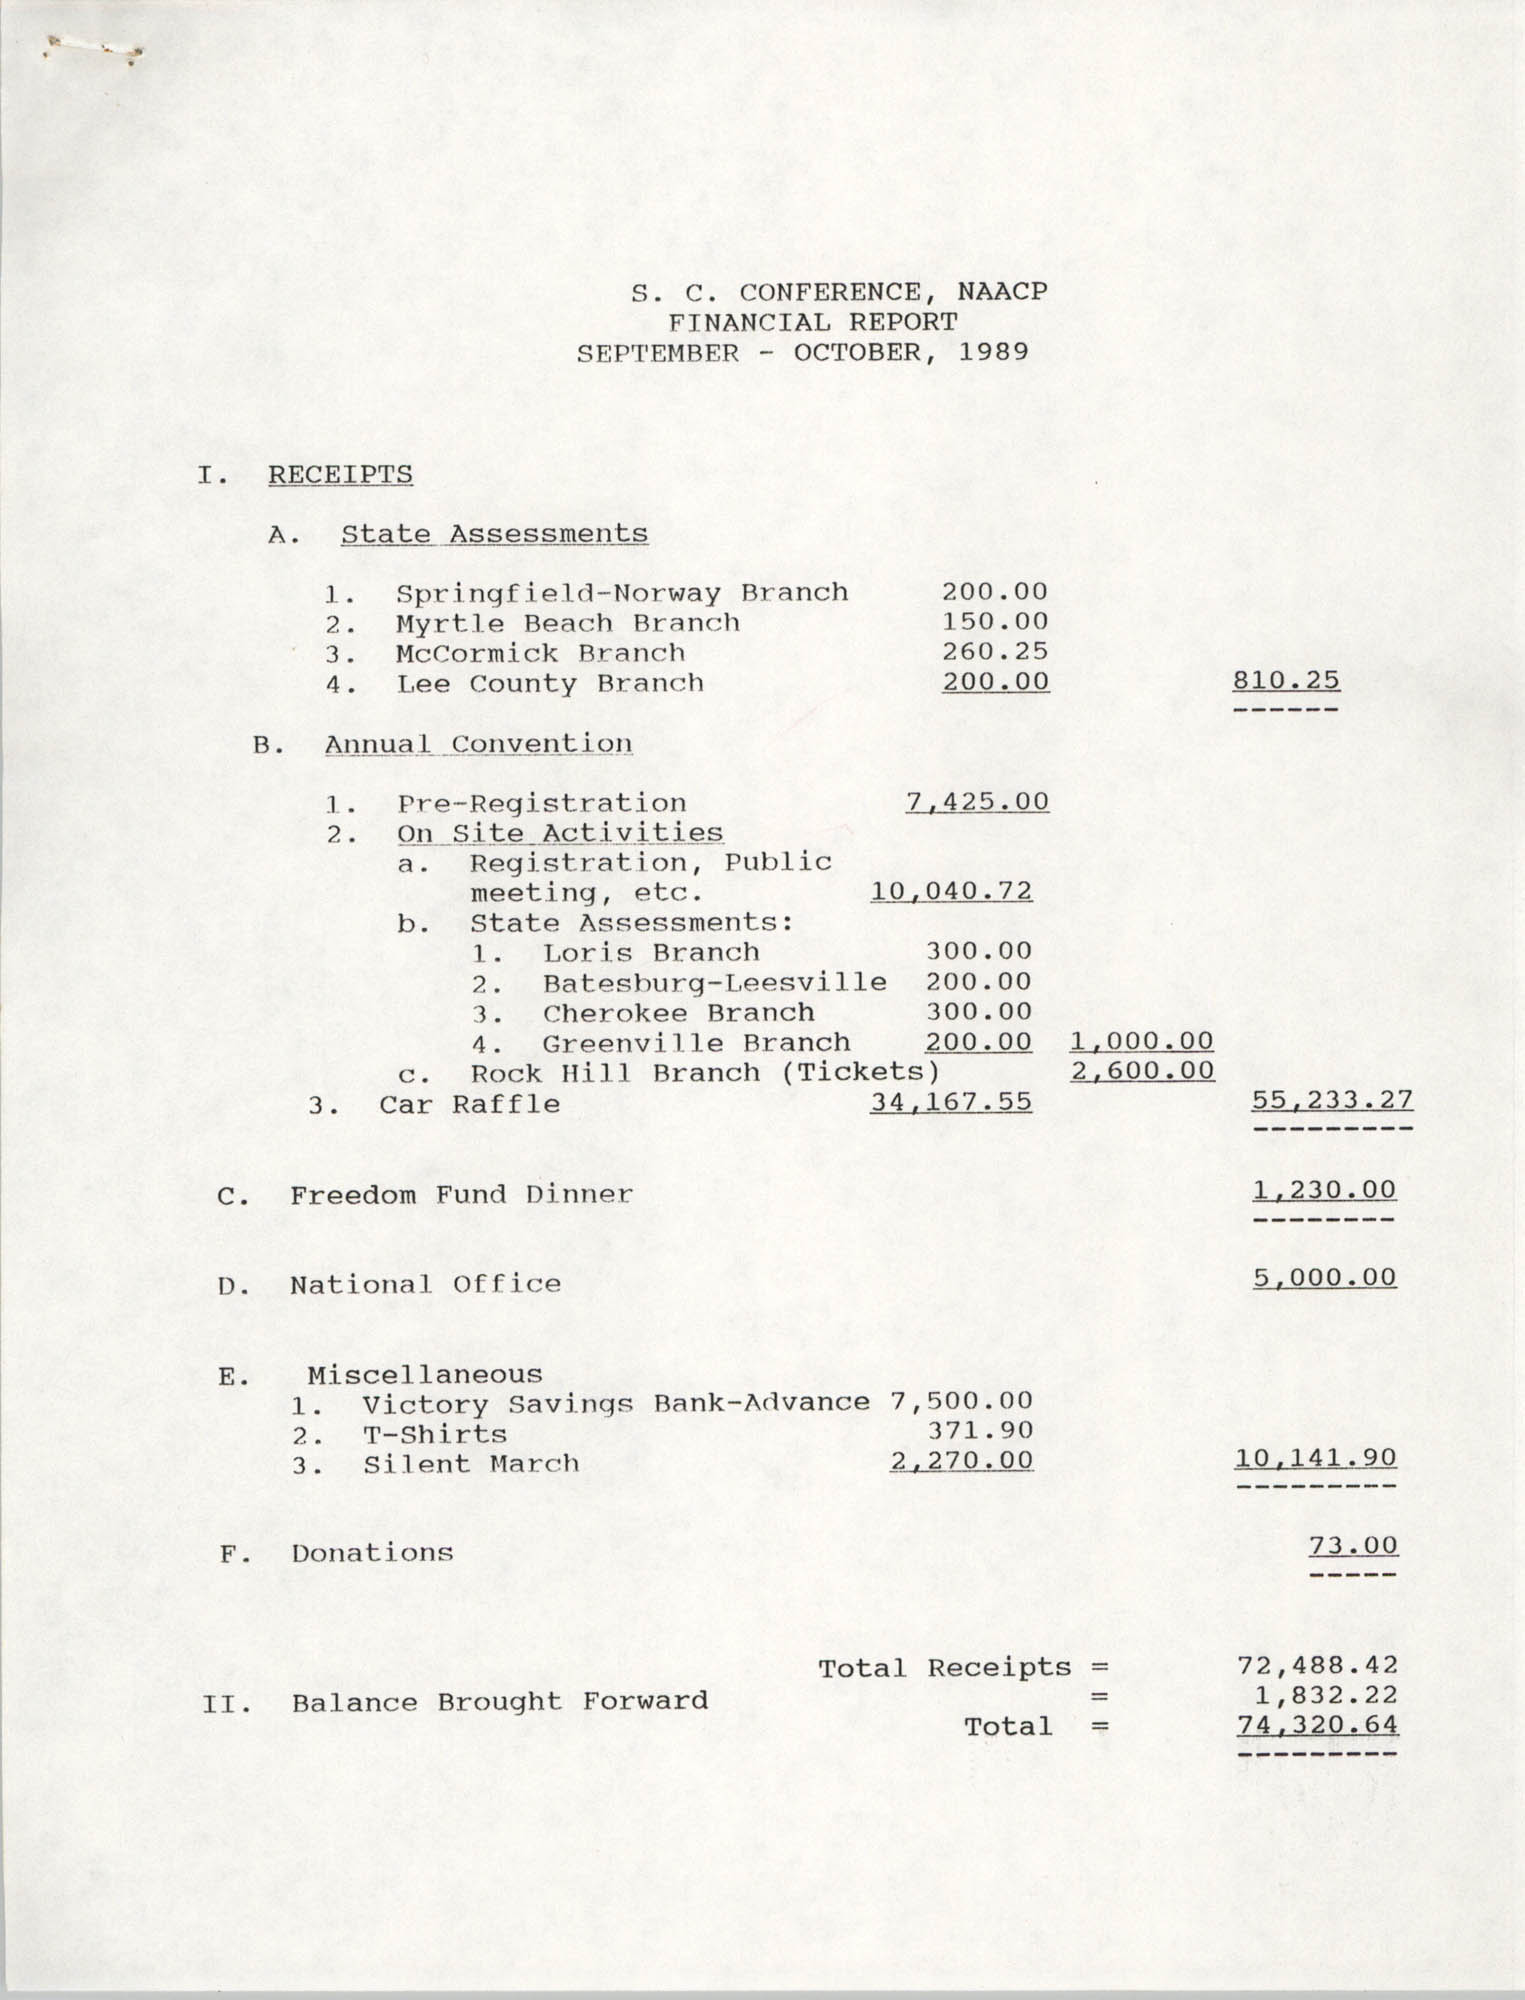 South Carolina Conference of Branches of the NAACP Financial Report, October 1989